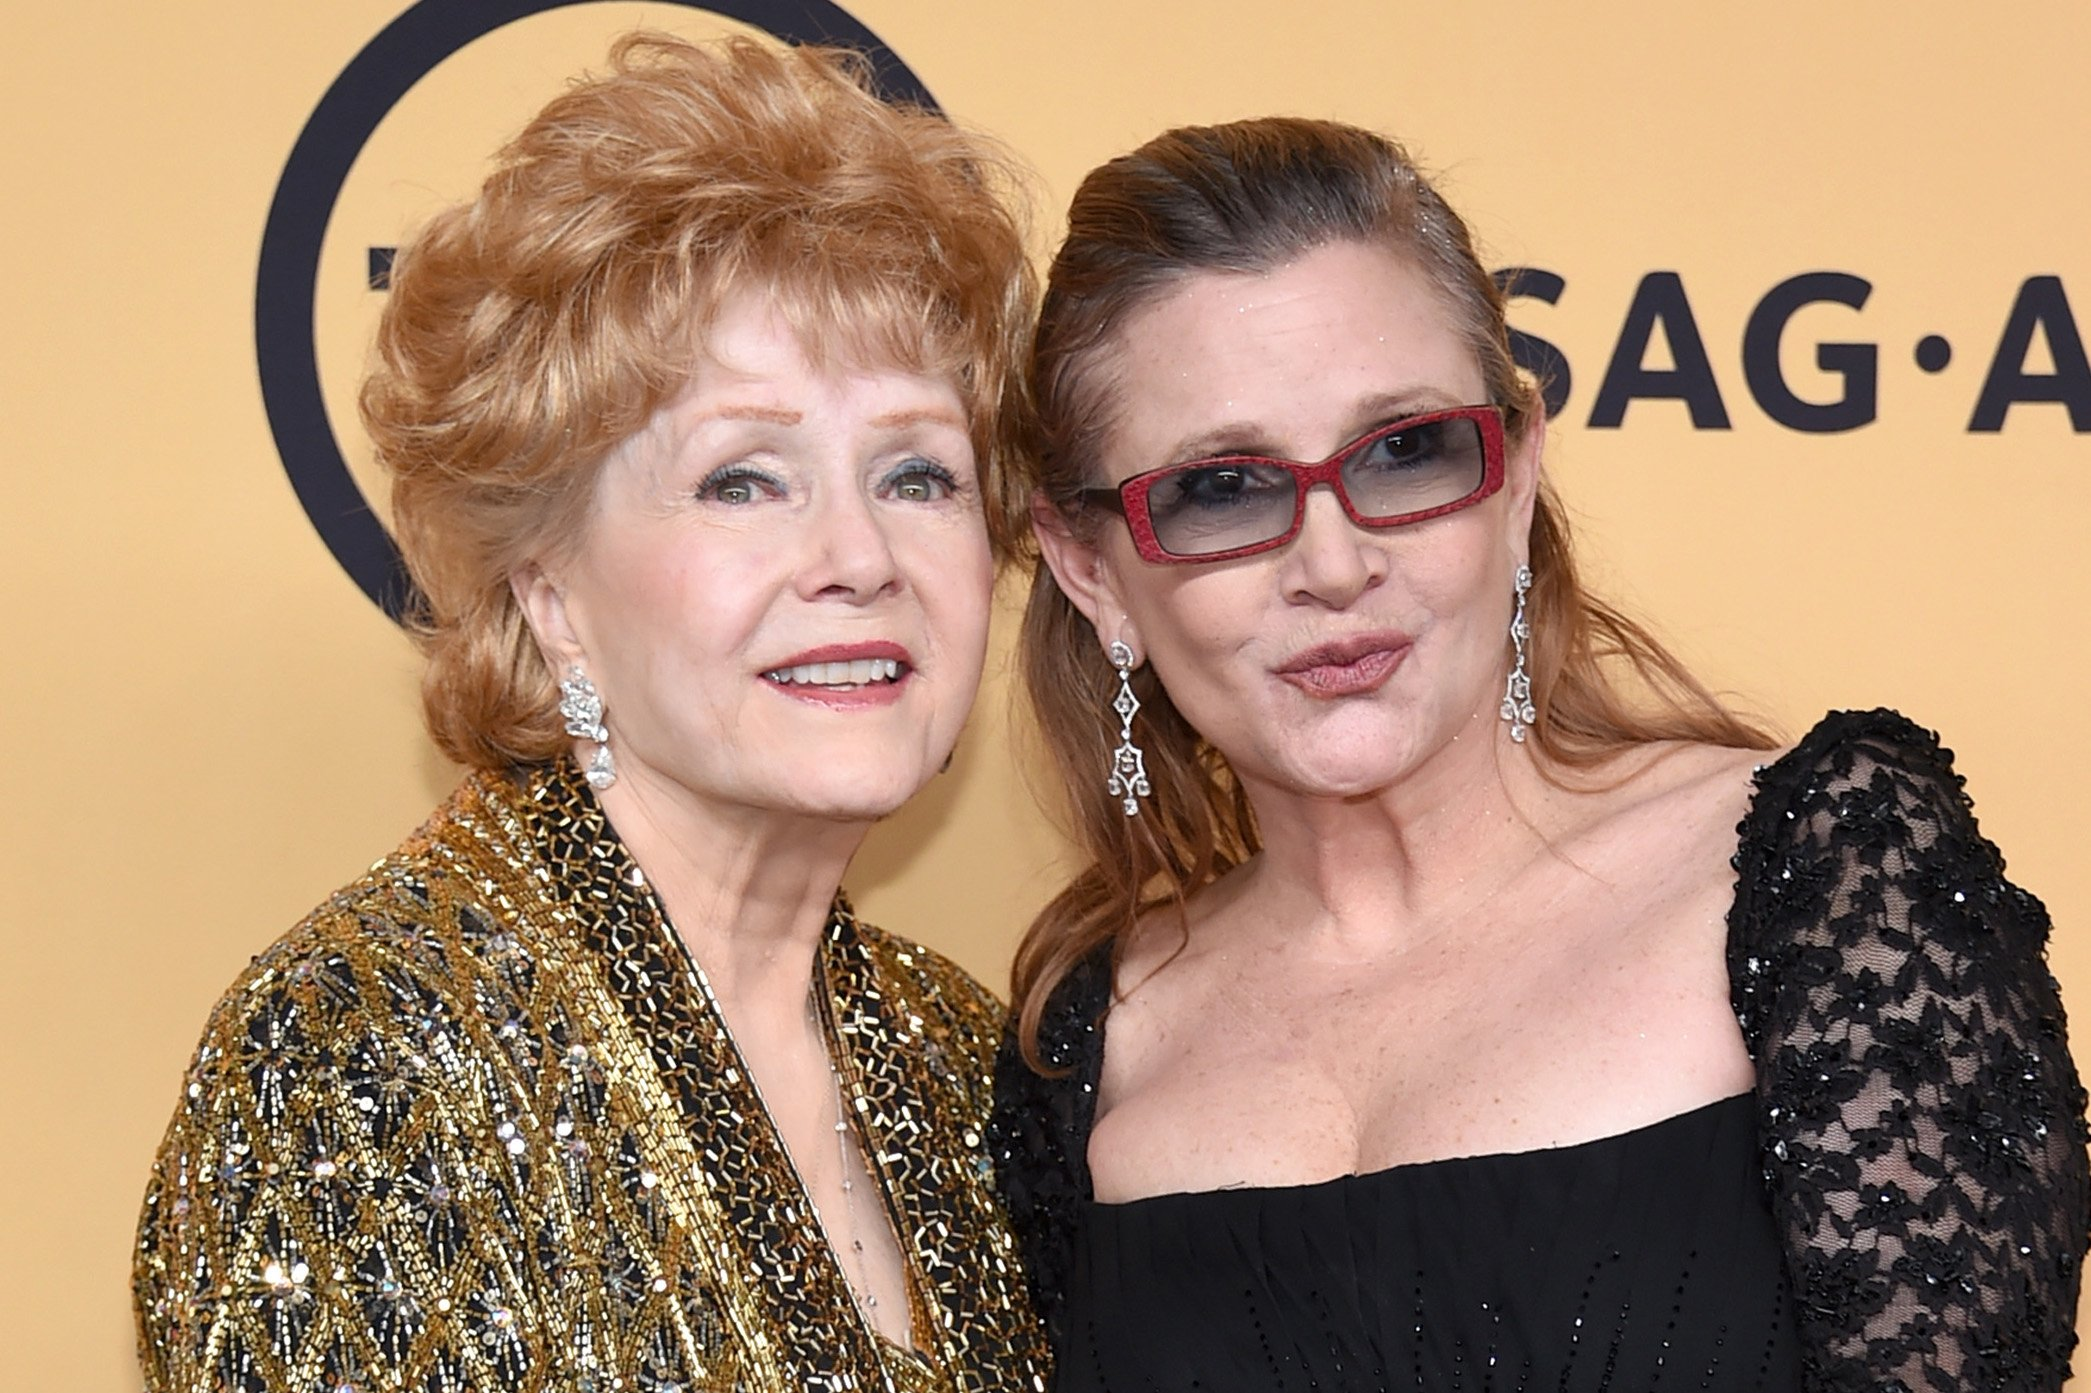 WATCH: The Trailer for HBO's Carrie Fisher-Debbie Reynolds Documentary Is Beautiful and Heartbreaking